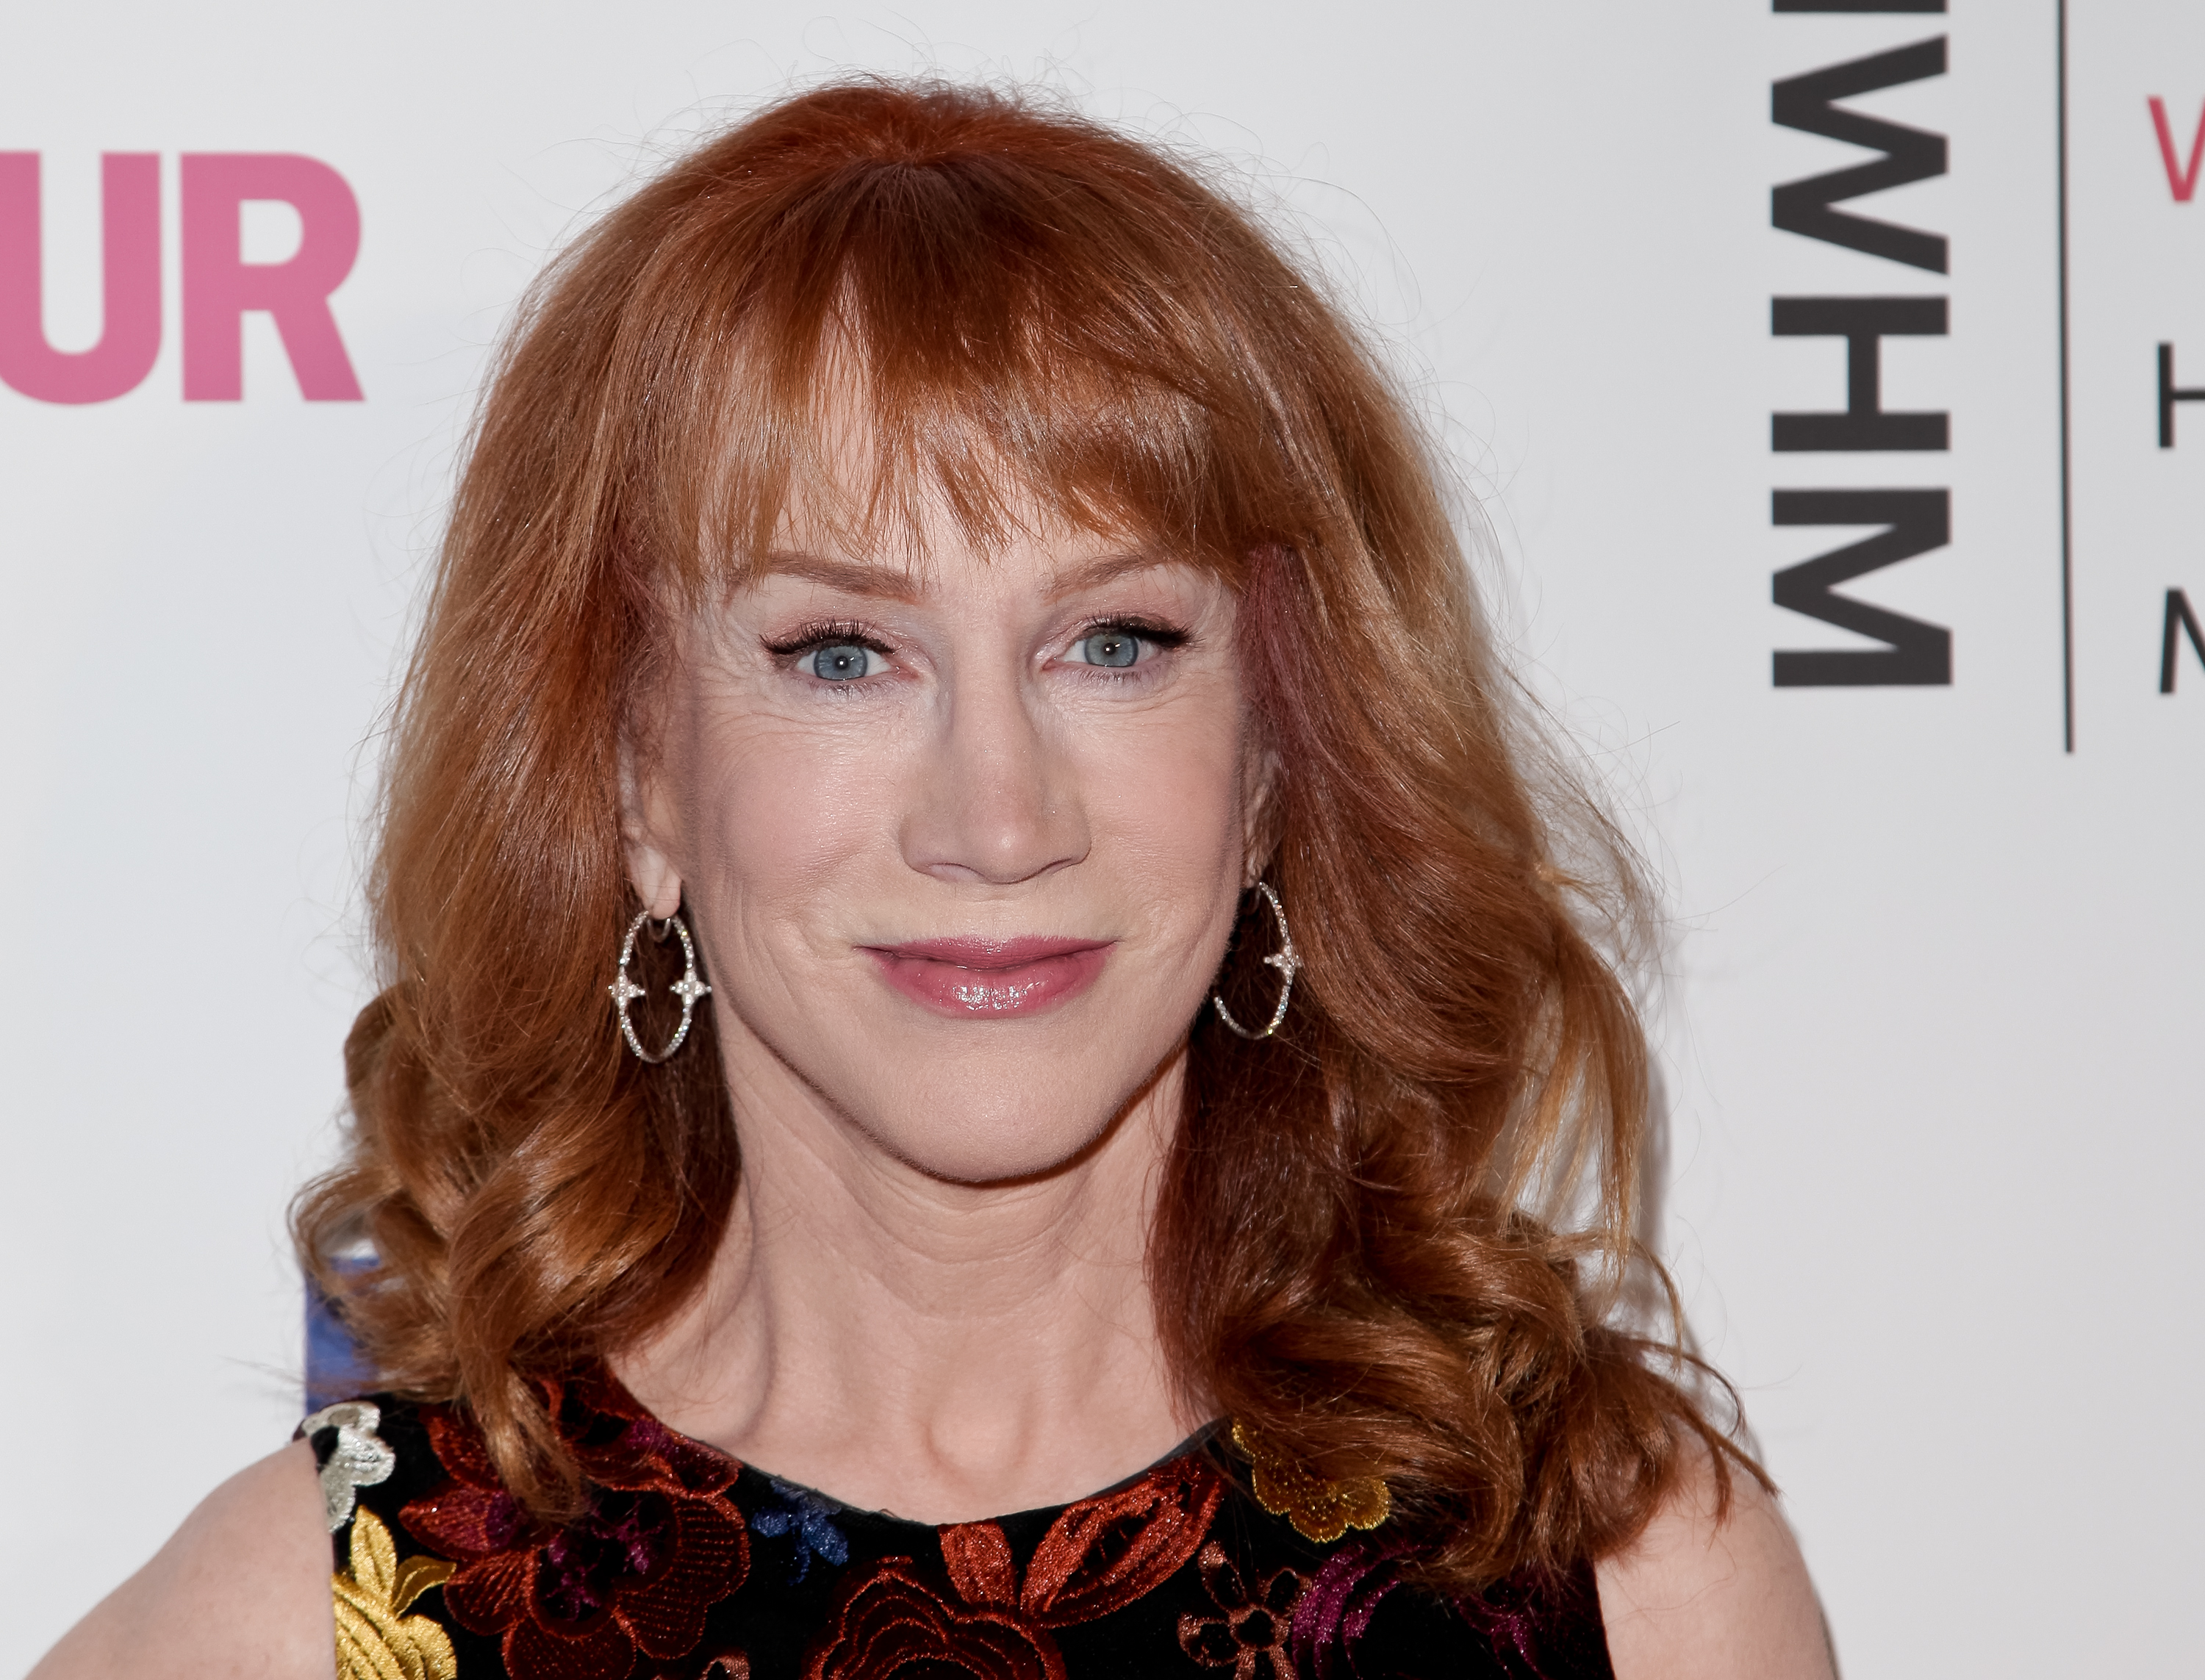 Kathy Griffin attends the 5th annual Women Making History Brunch at Montage Beverly Hills on September 17, 2016 in Beverly Hills, California.